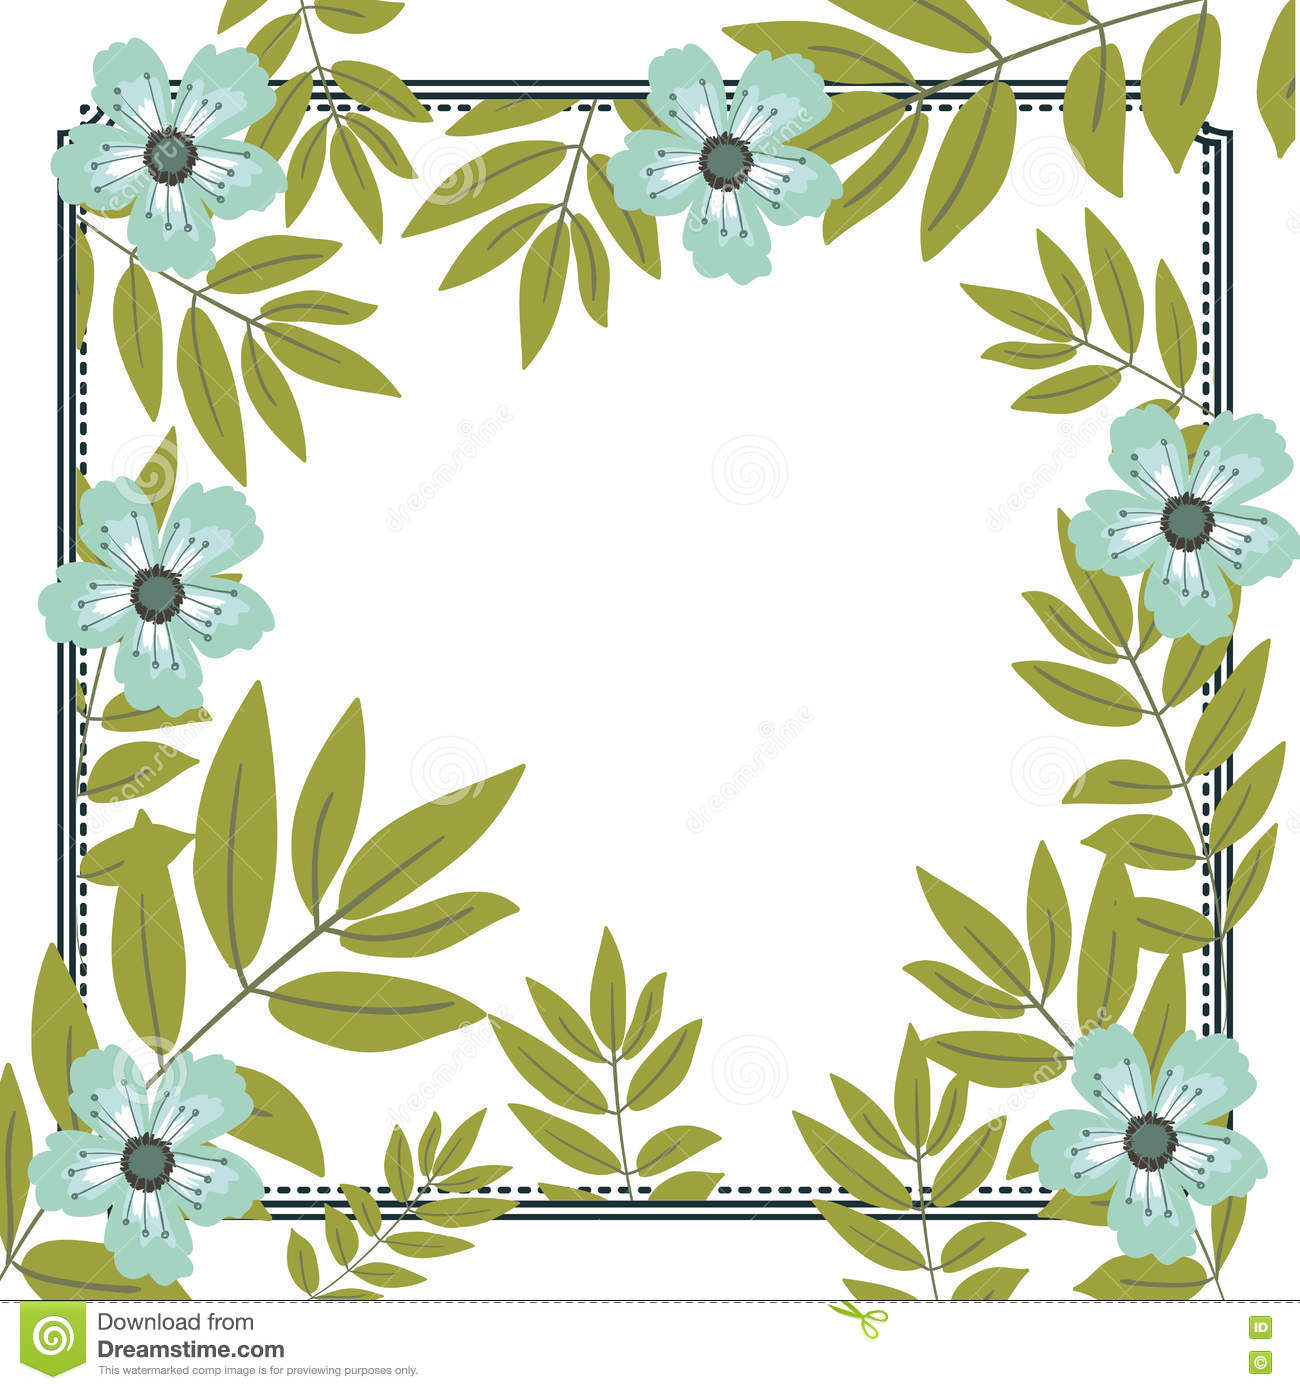 Isolated Flowers And Leaves Frame Design Stock Vector Illustration